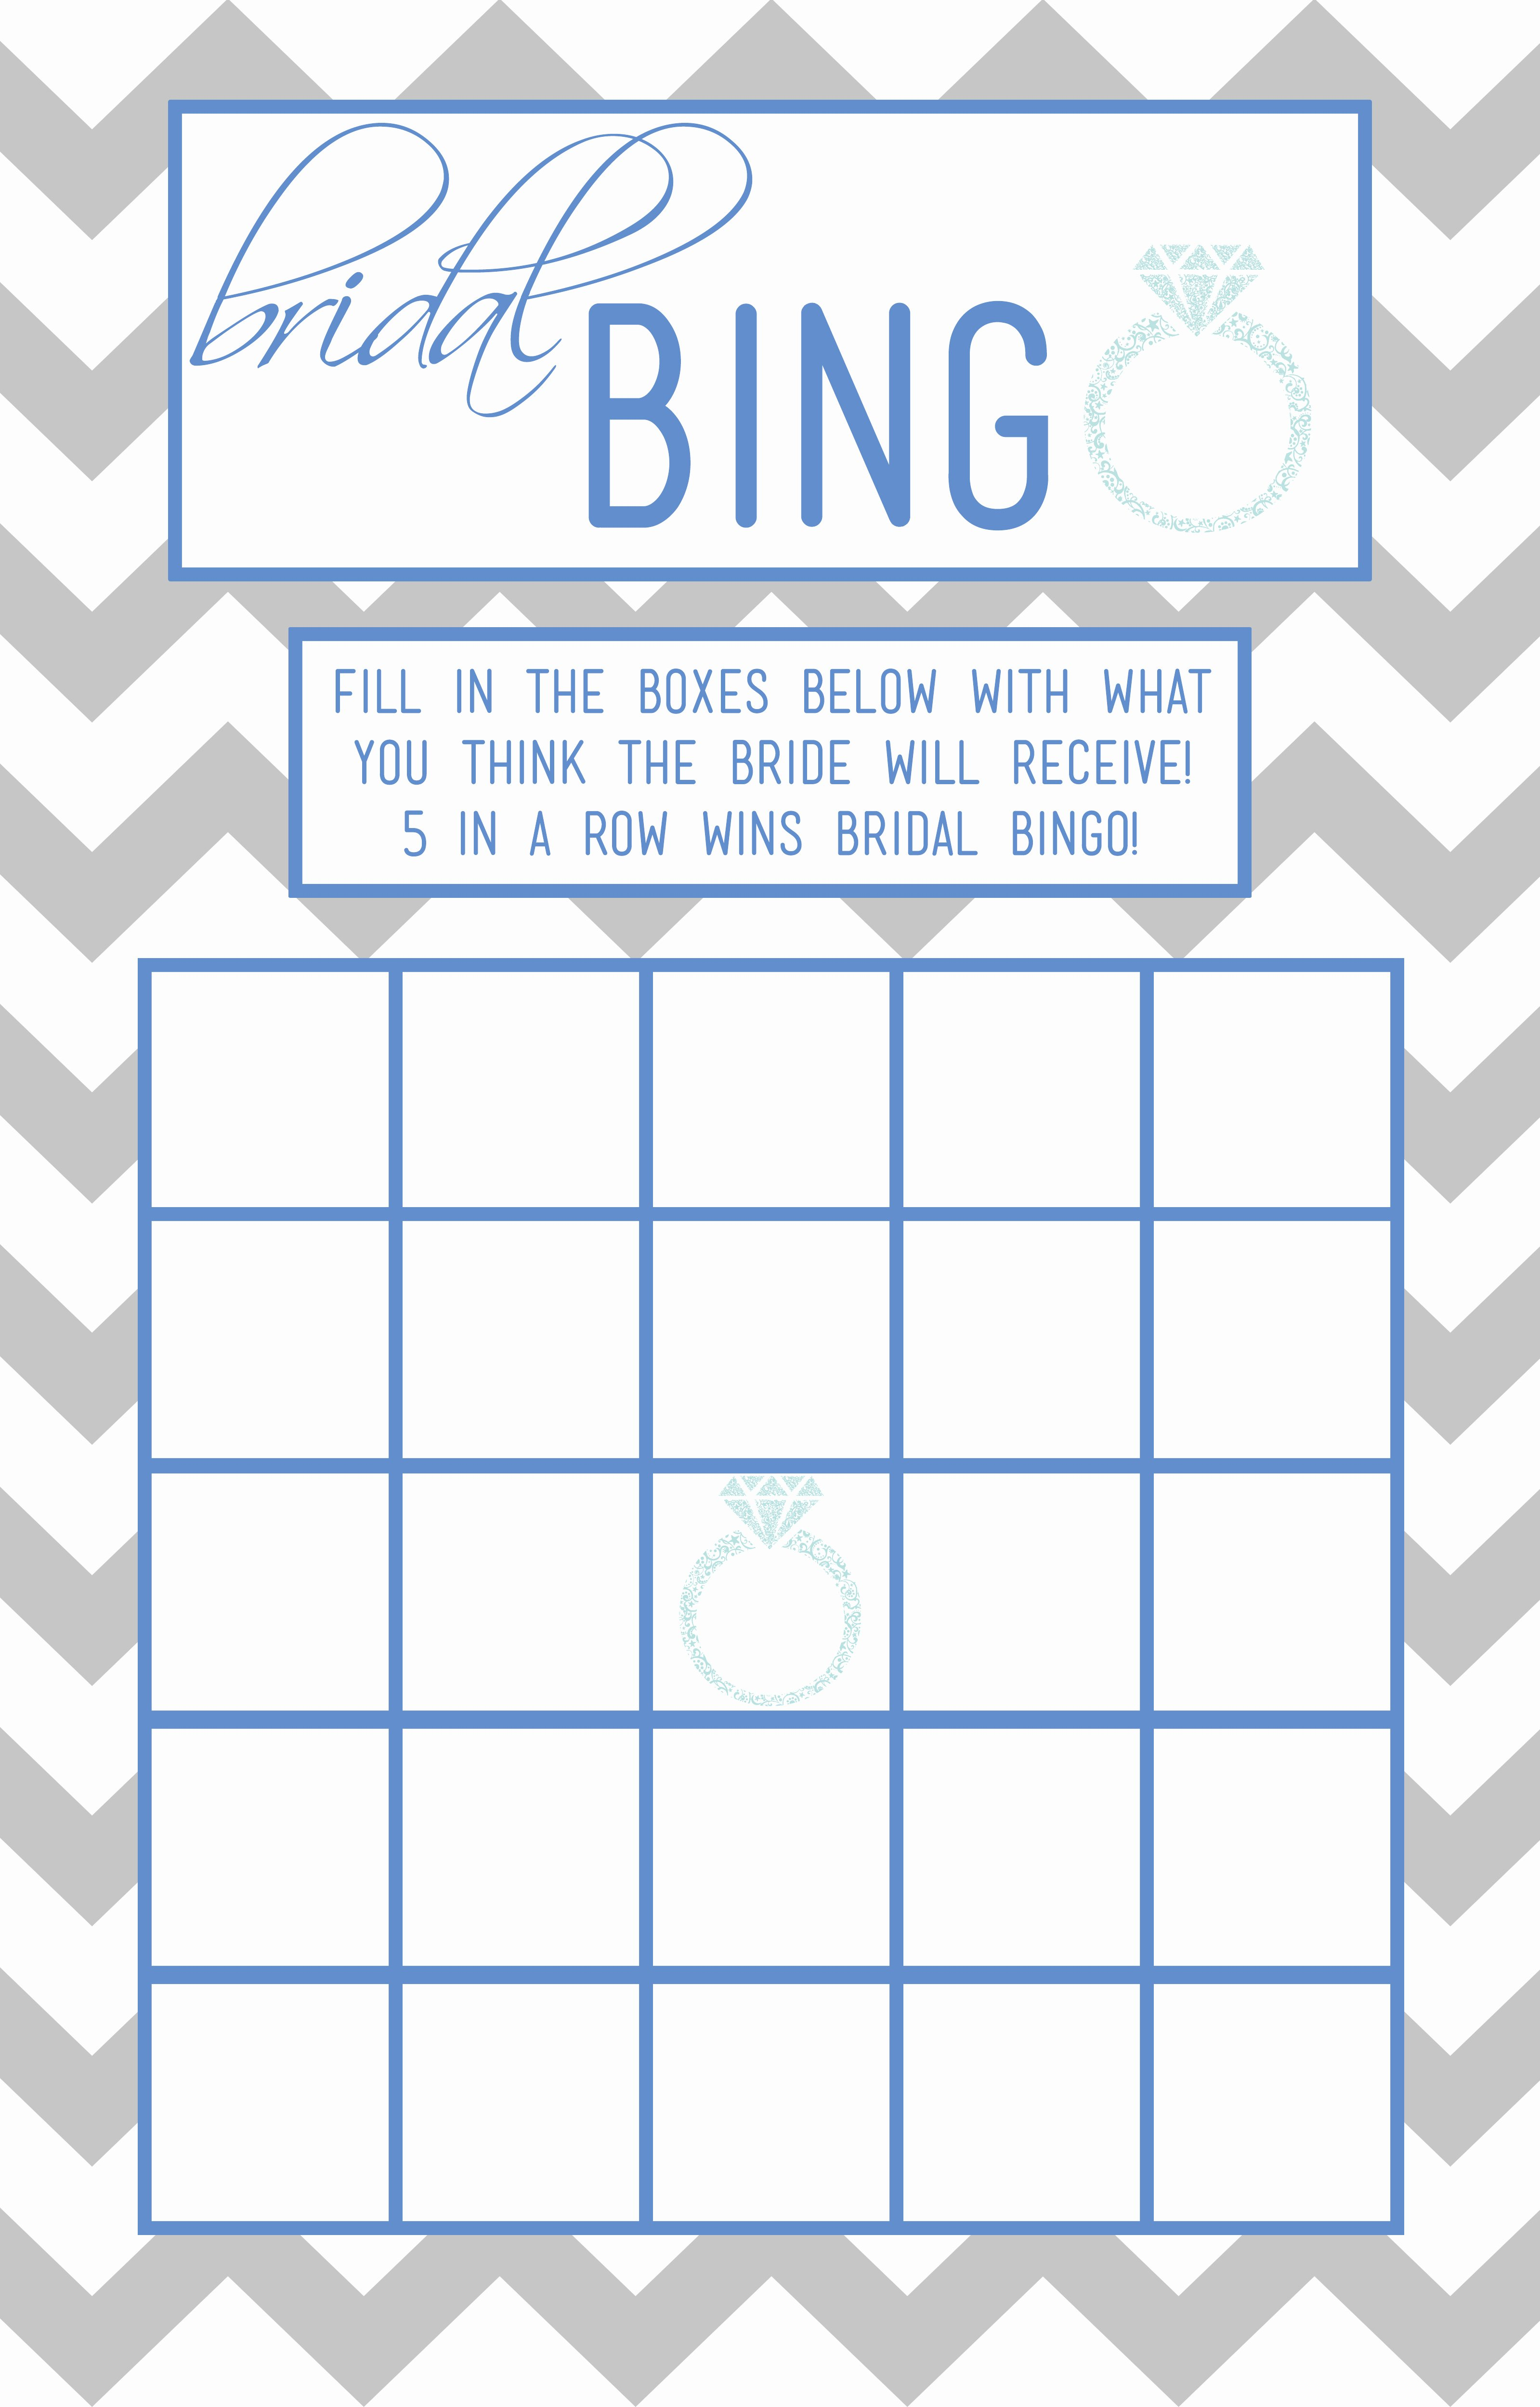 Bridal Bingo Template Inspirational Bridal Bingo Template